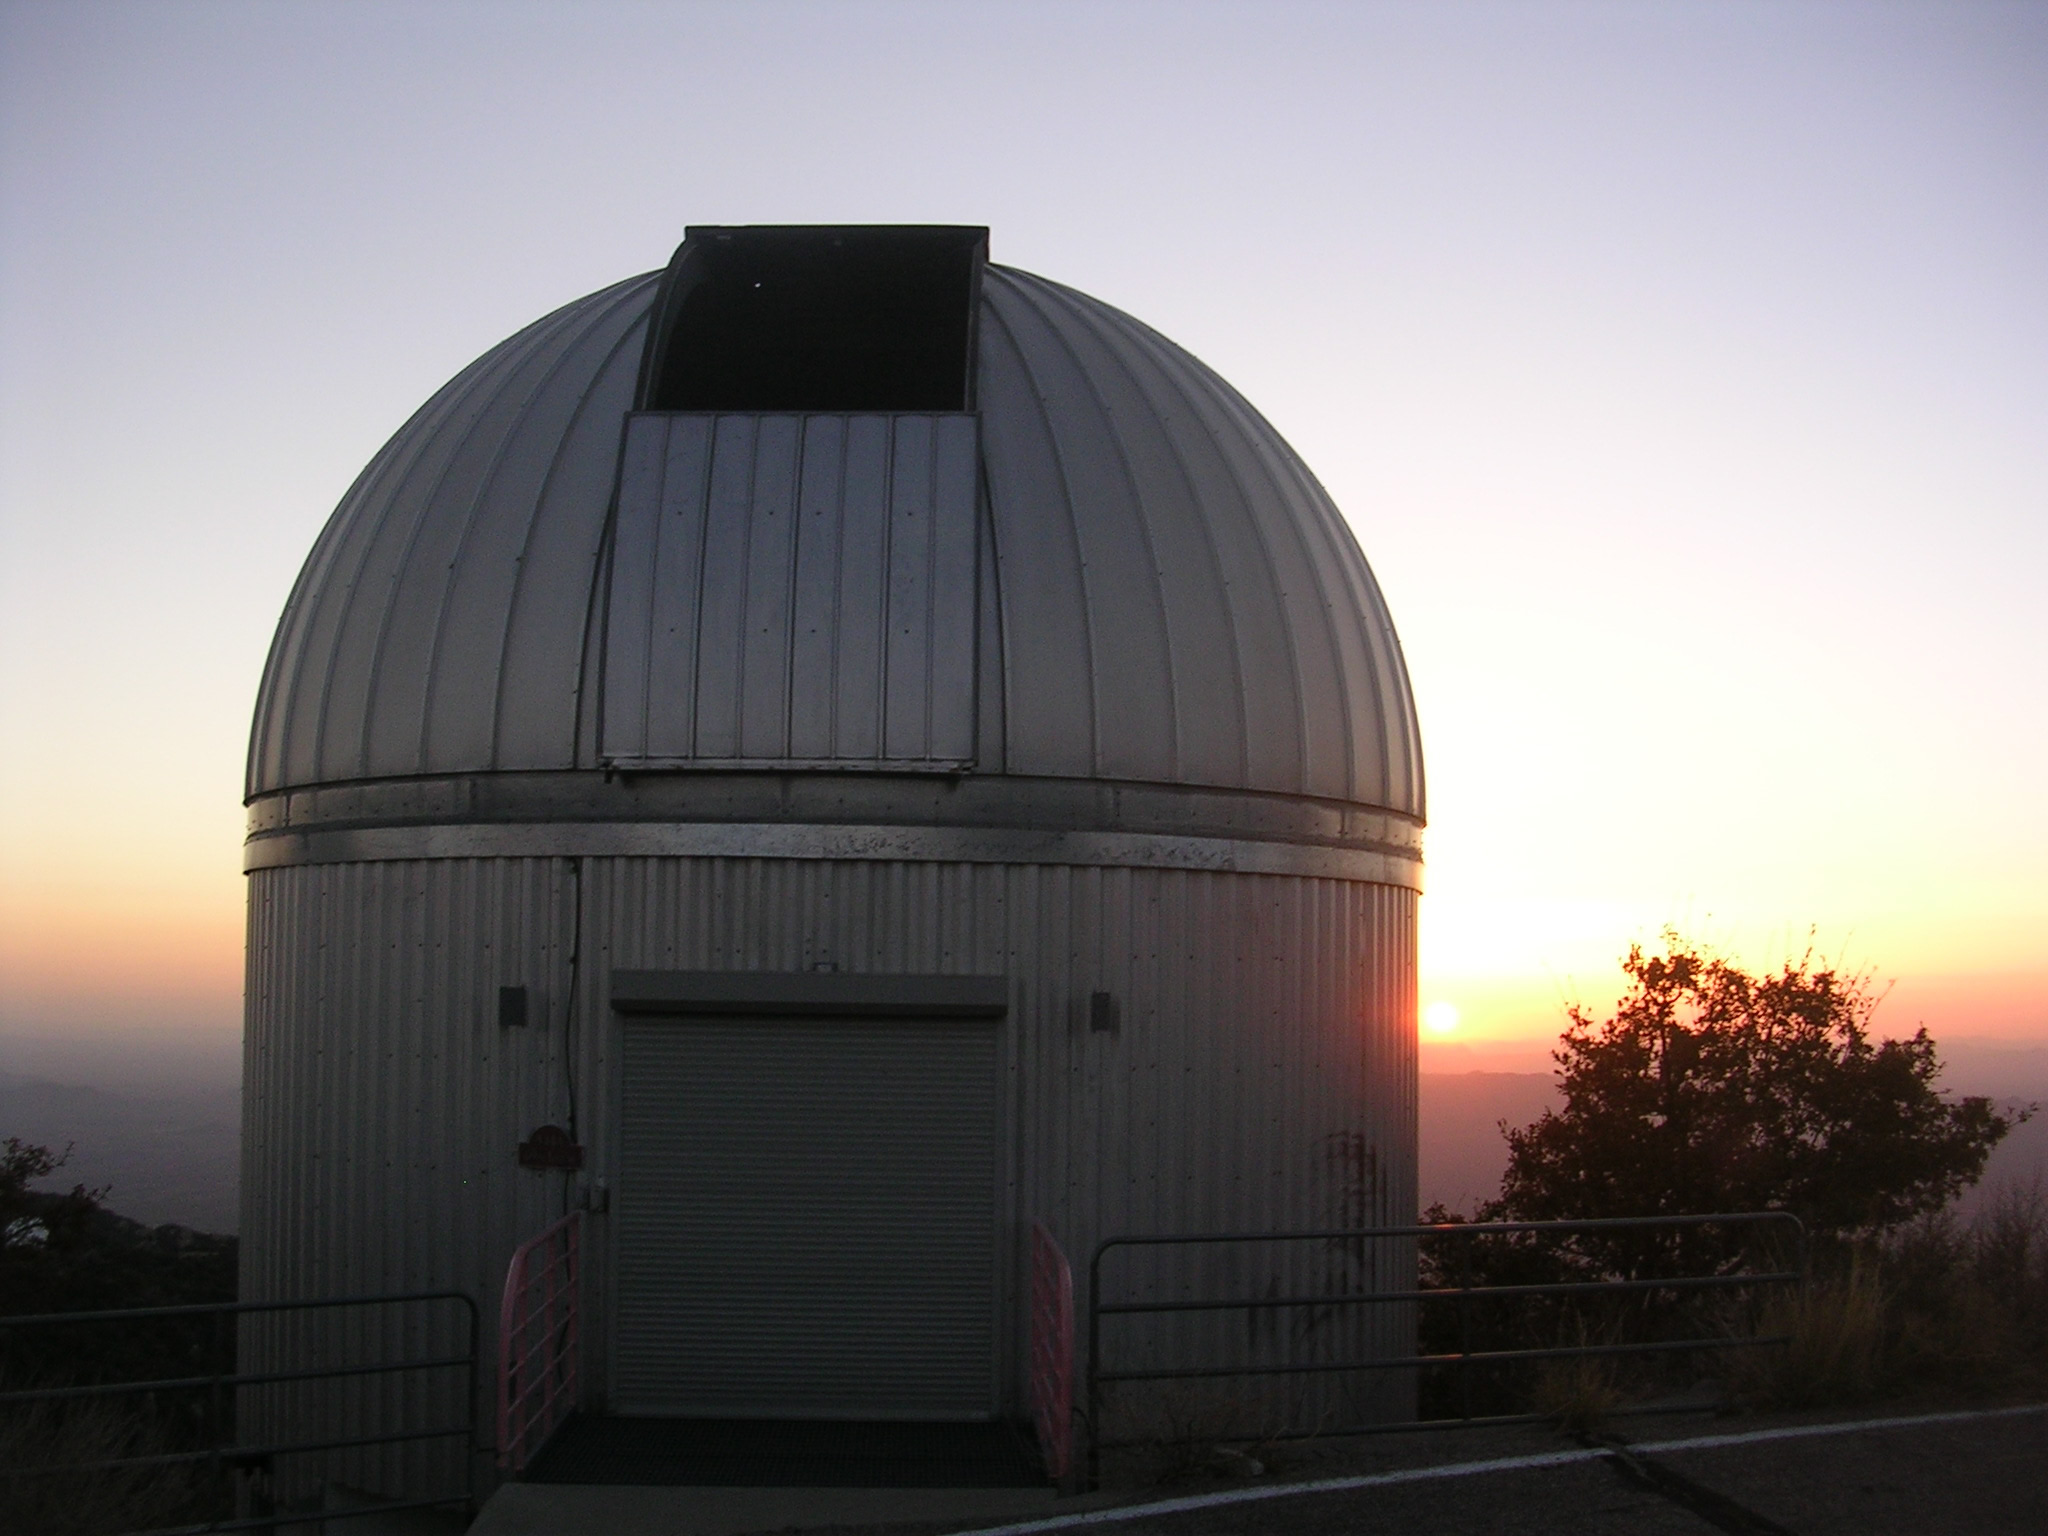 astronomy observatory with telescope - photo #7